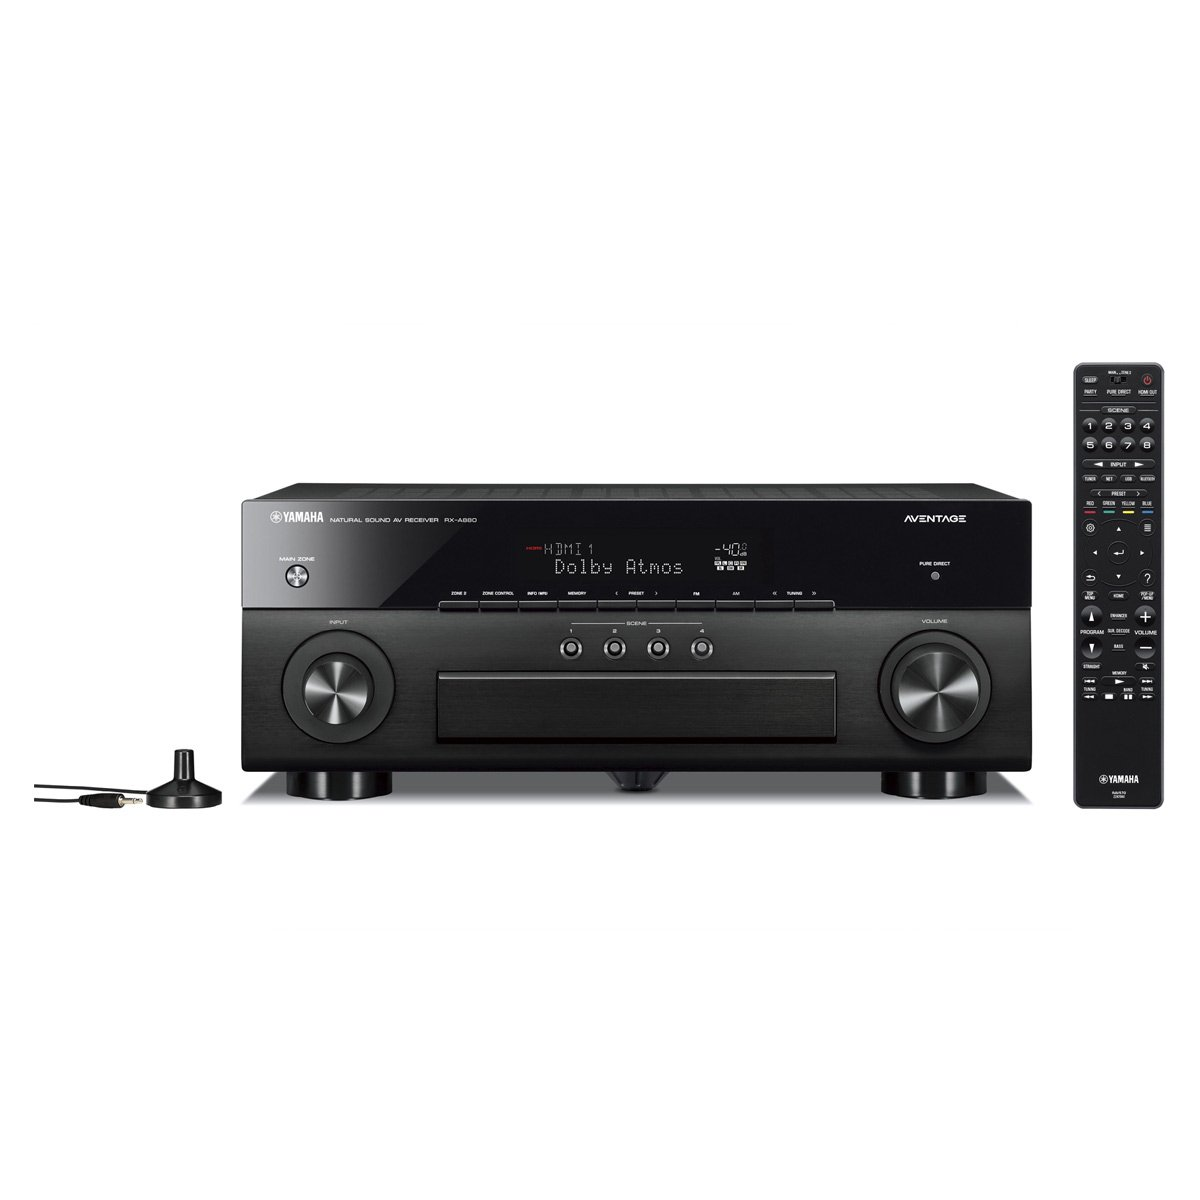 Yamaha RX-A880 Premium Audio & Video Component Receiver - Black by Yamaha Audio (Image #2)